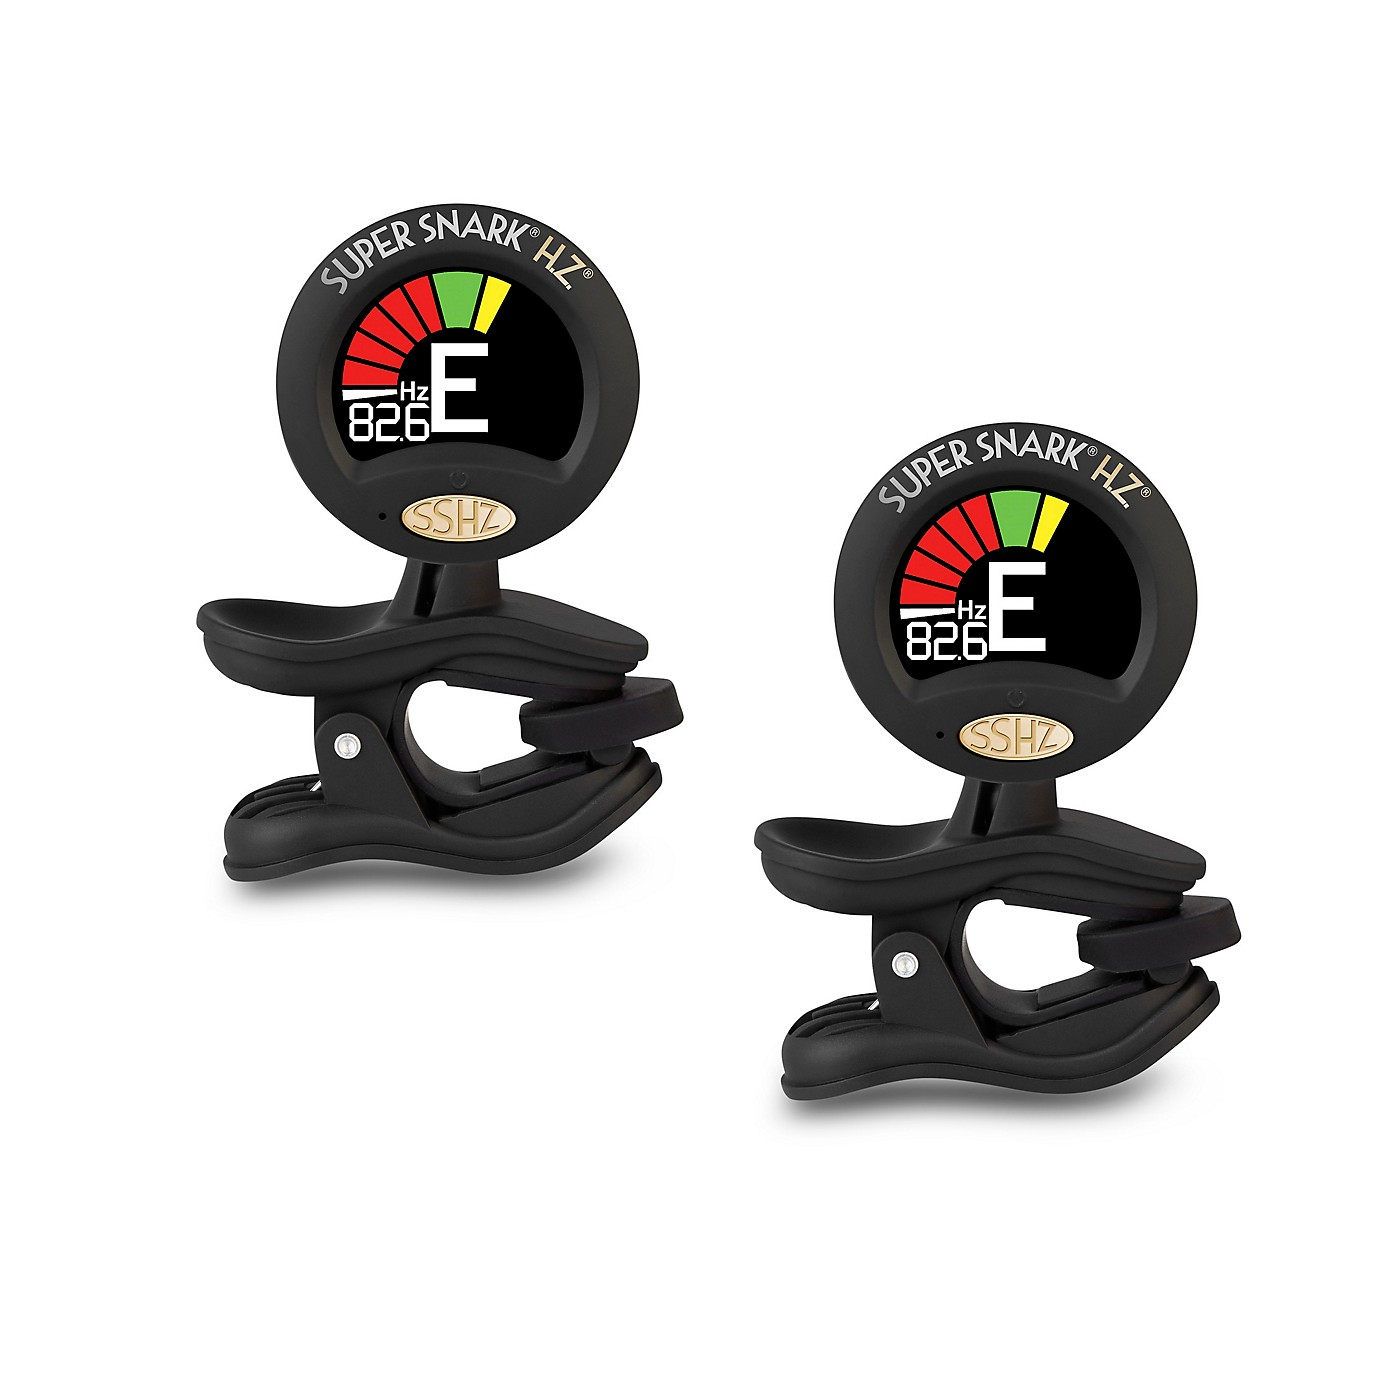 Snark Super Snark HZ Clip-On Tuner 2-Pack thumbnail